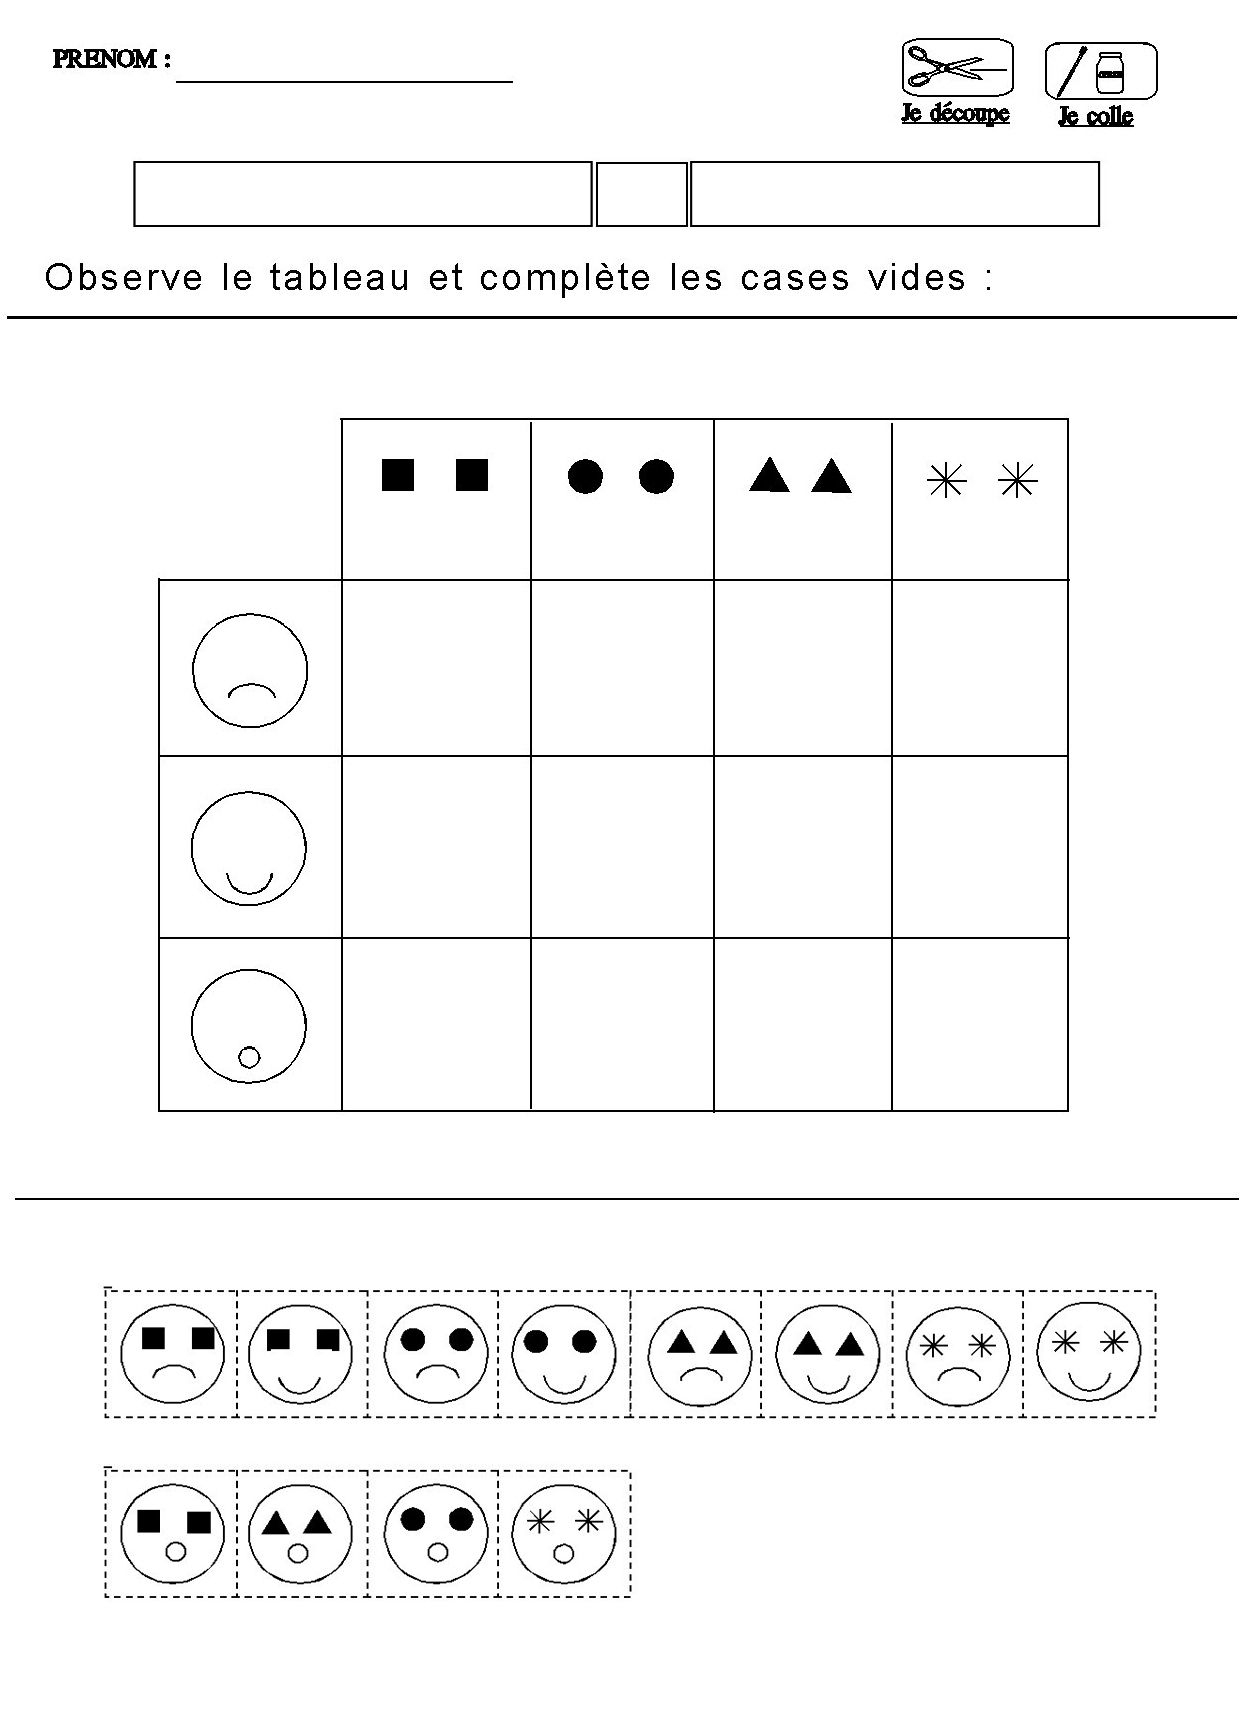 Tableau Double Entrees Pour Maternelle Moyenne Section avec Grand Section Exercice